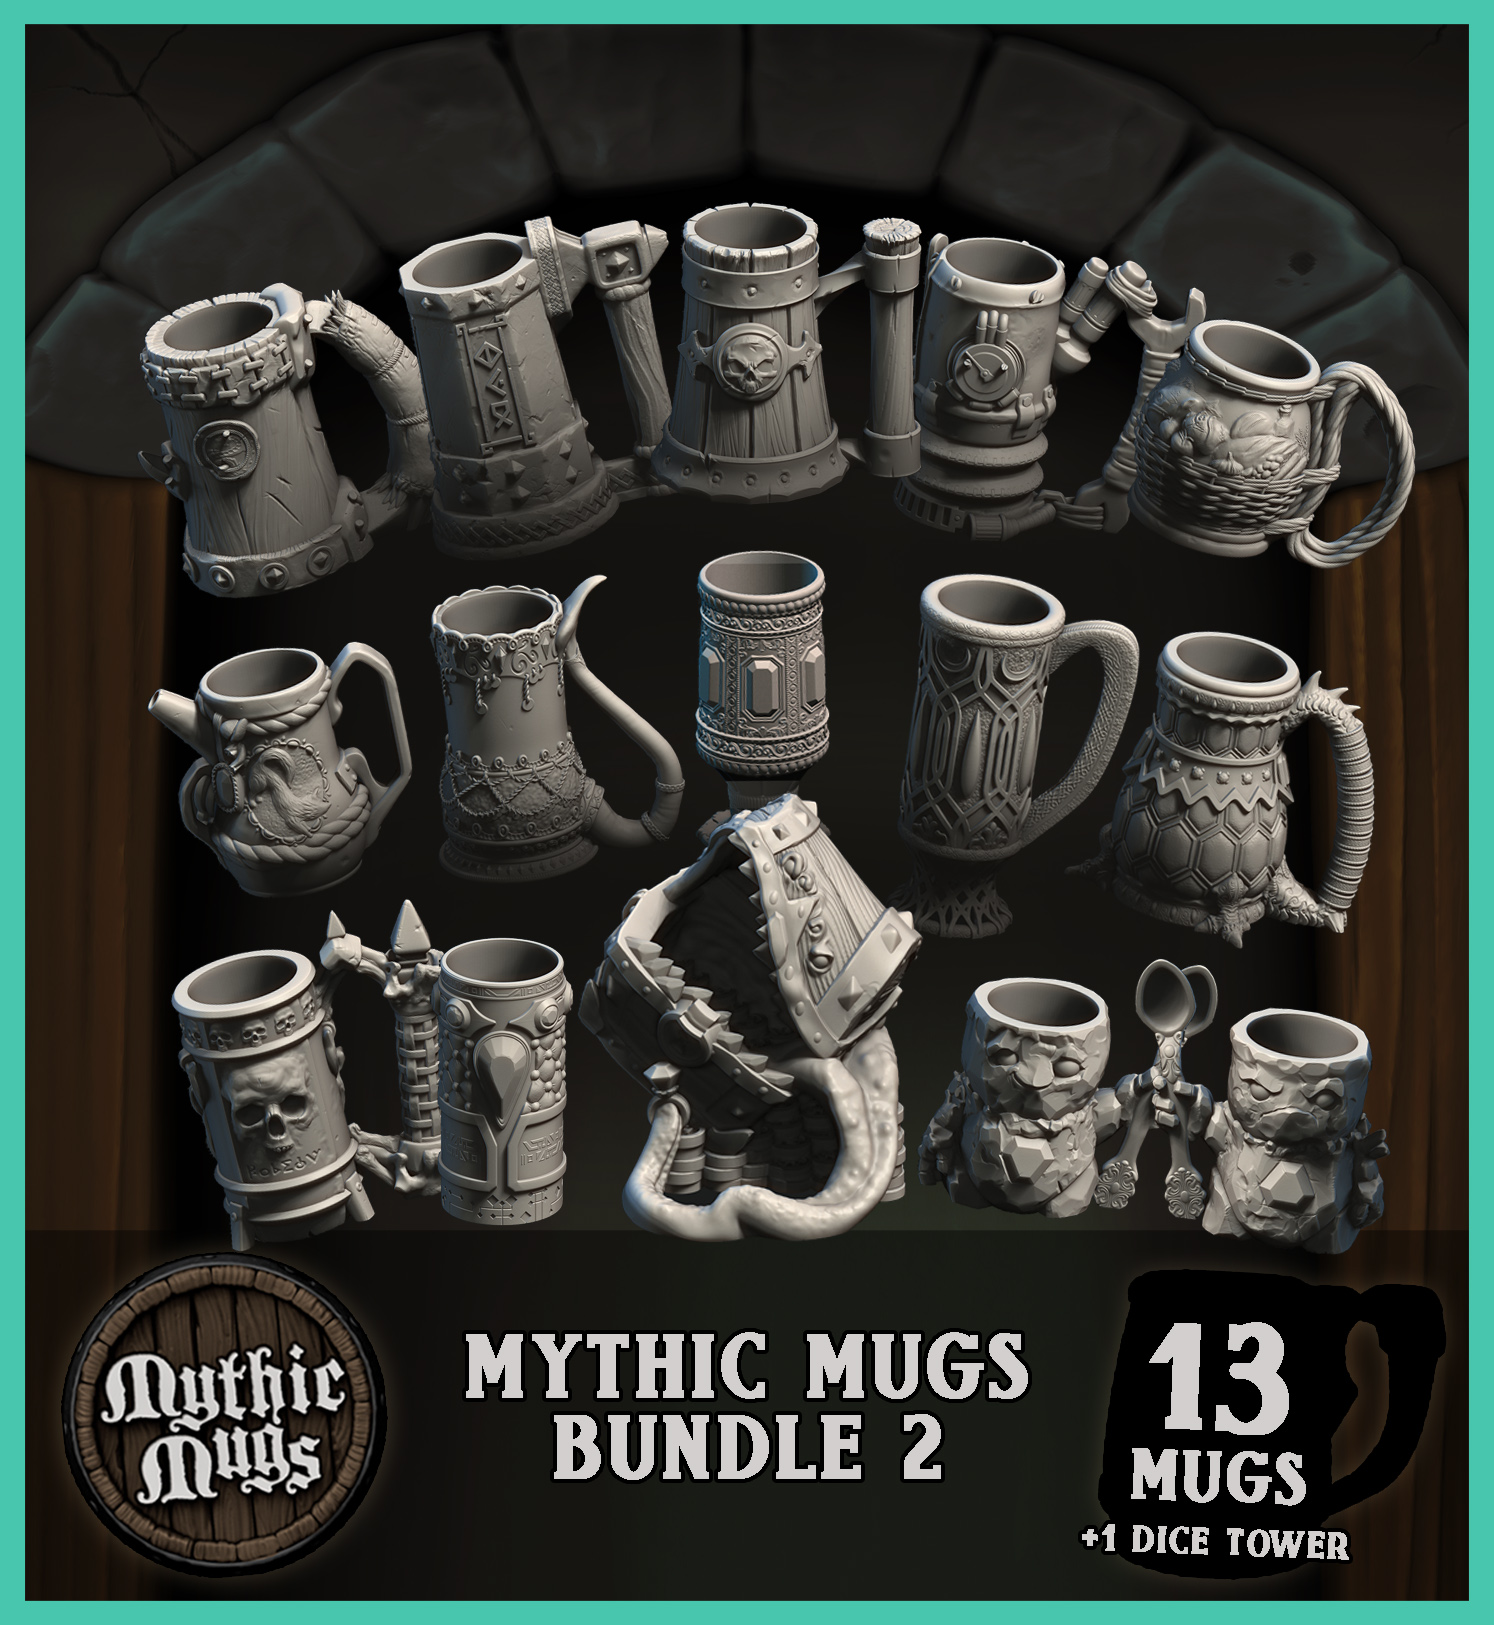 Mythic_Mugs_Bundle_2.jpg